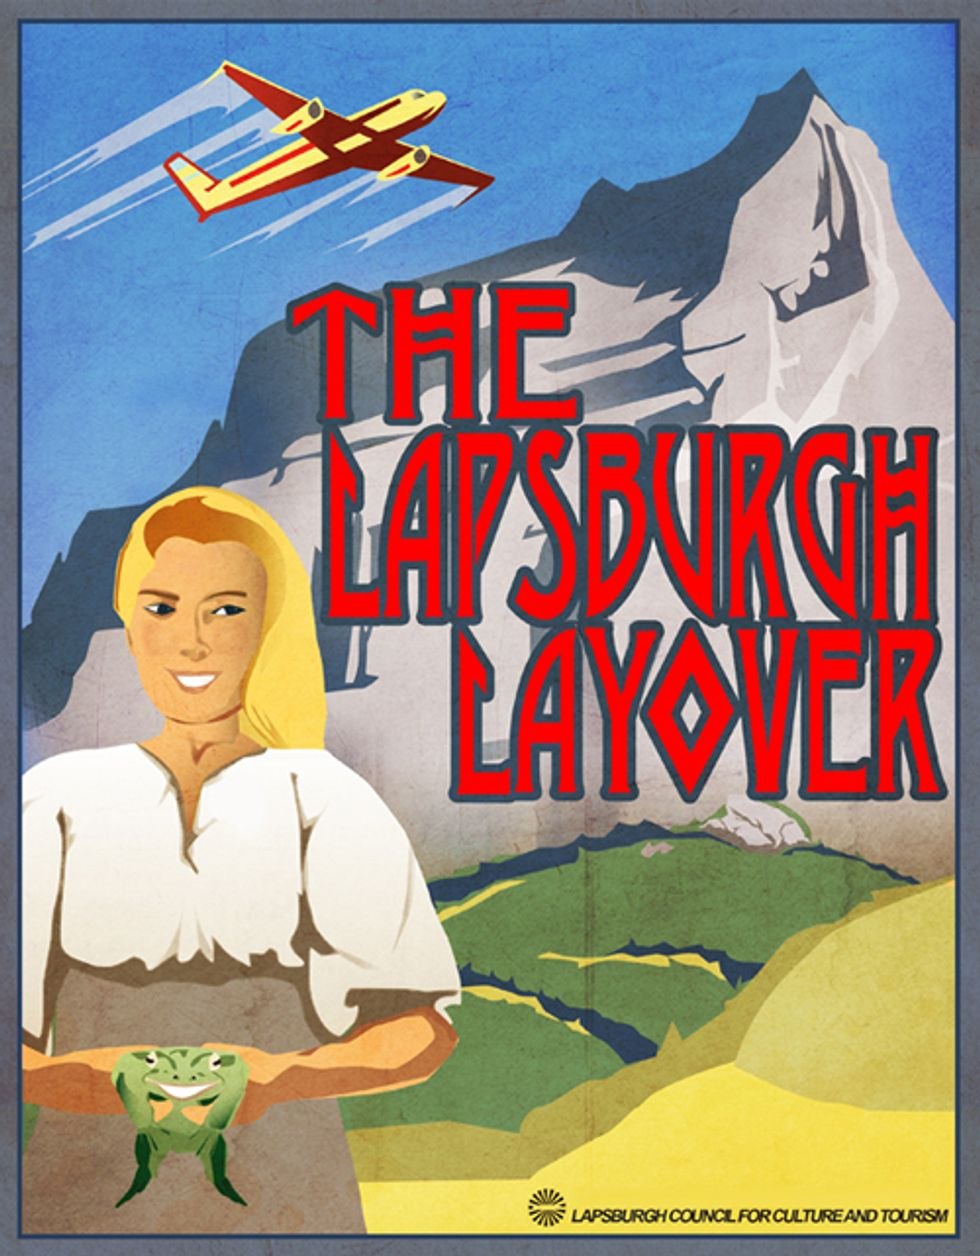 Stage Notes: The Lapsburgh Layover